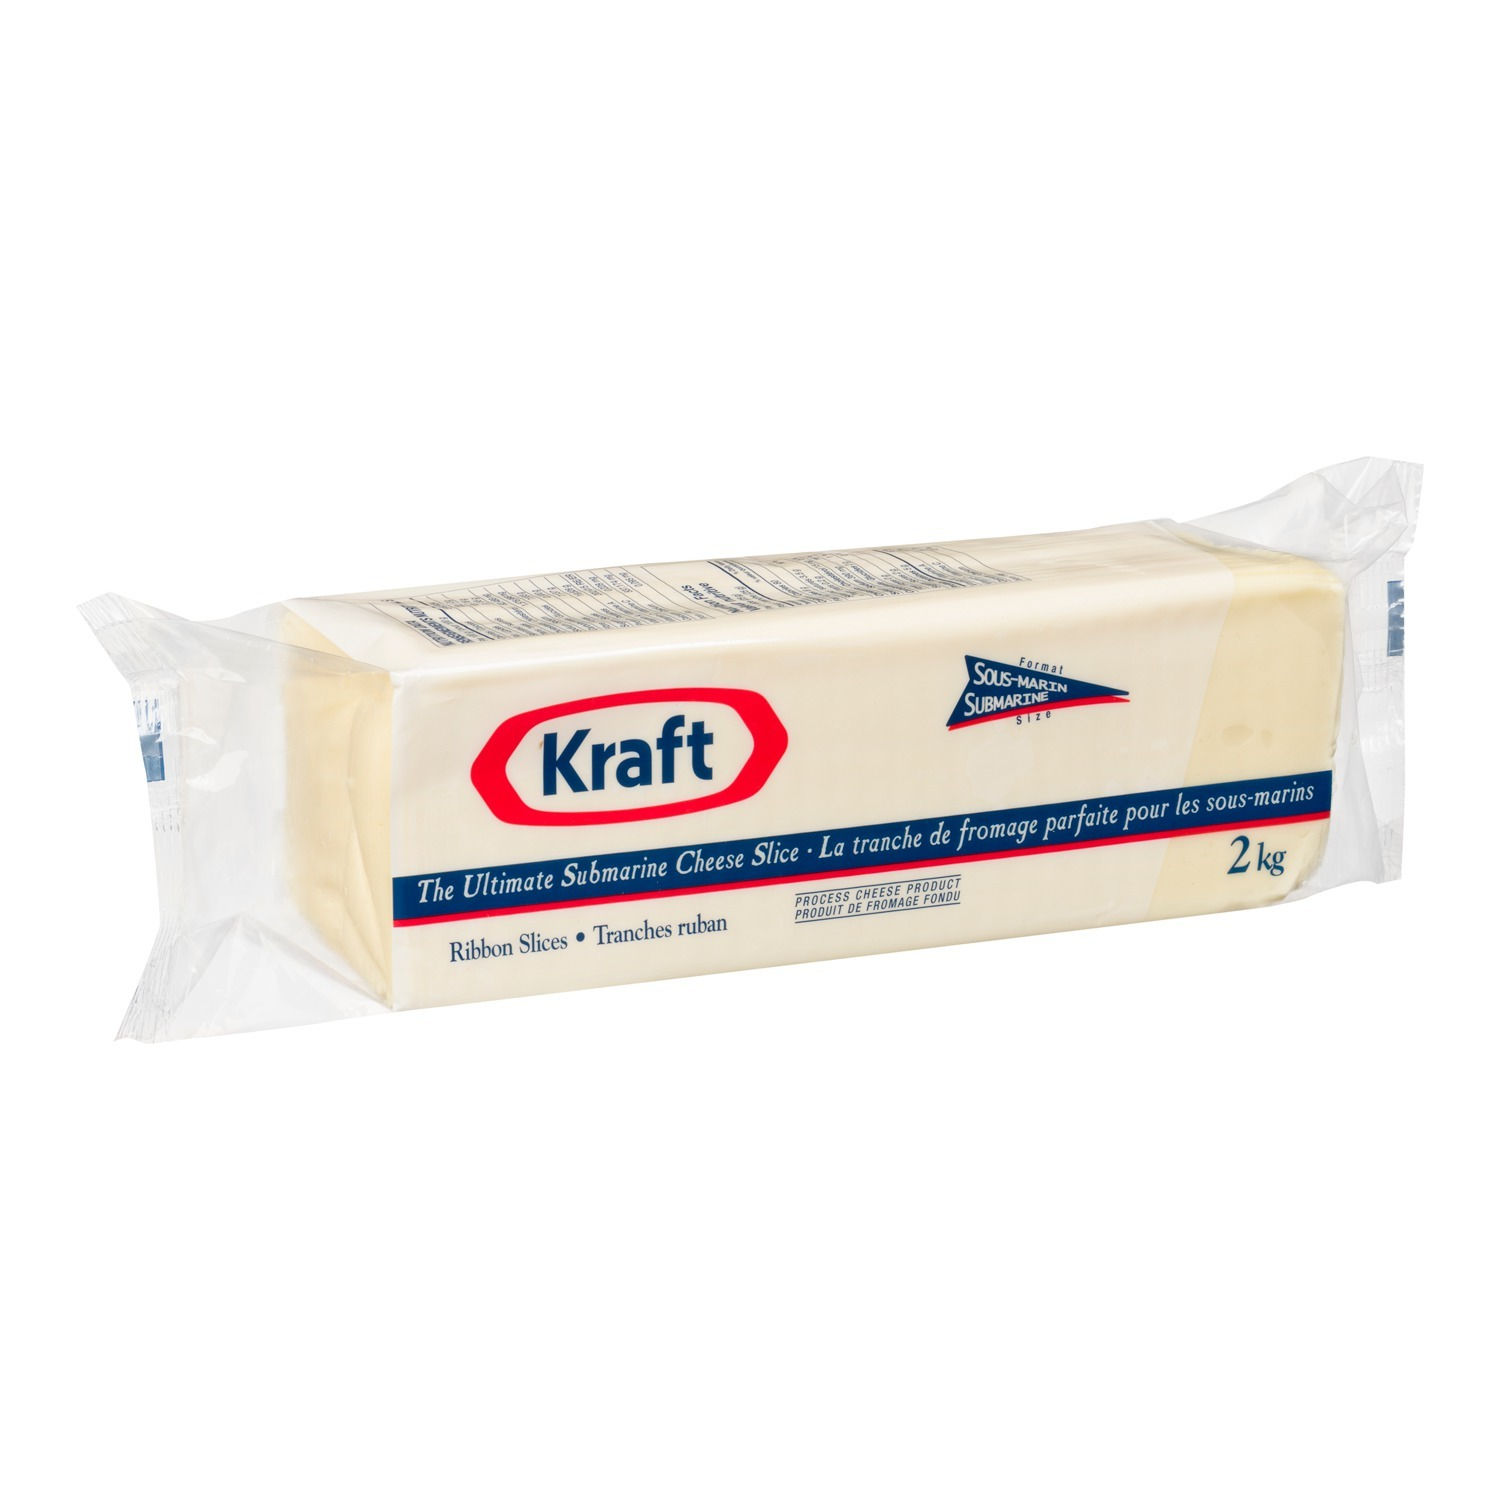 KRAFT Darifarm Submarine White Cheese-Slices 2kg 2